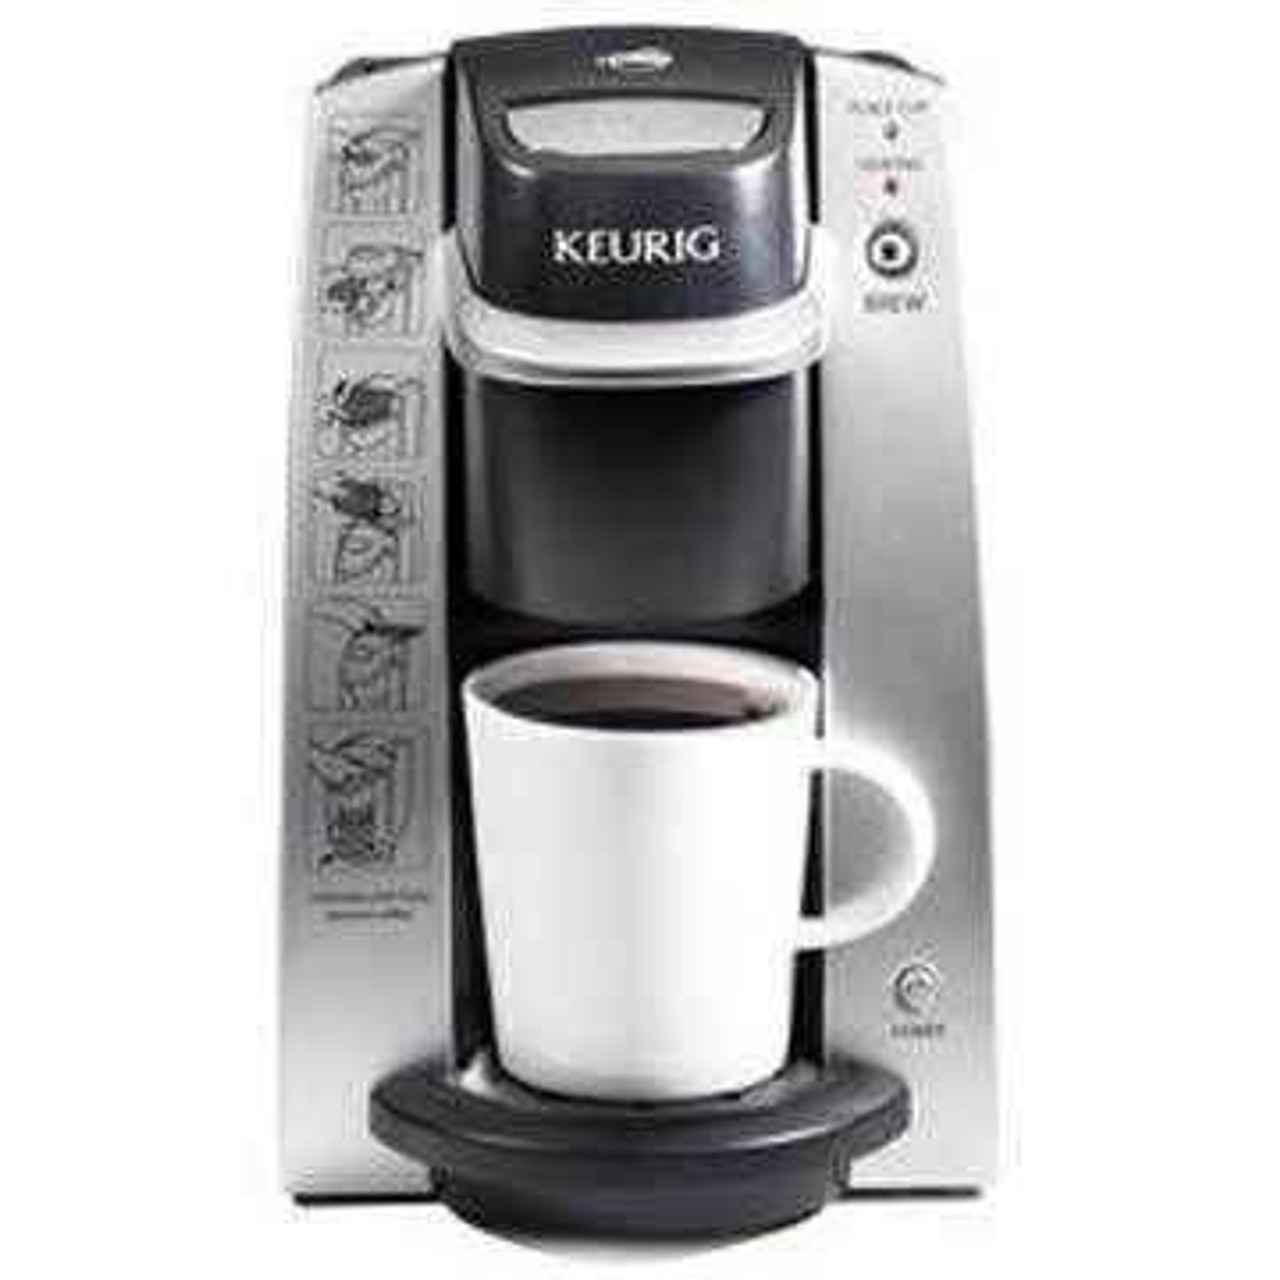 Keurig or K130 Hotel Brewer or Pack of 1